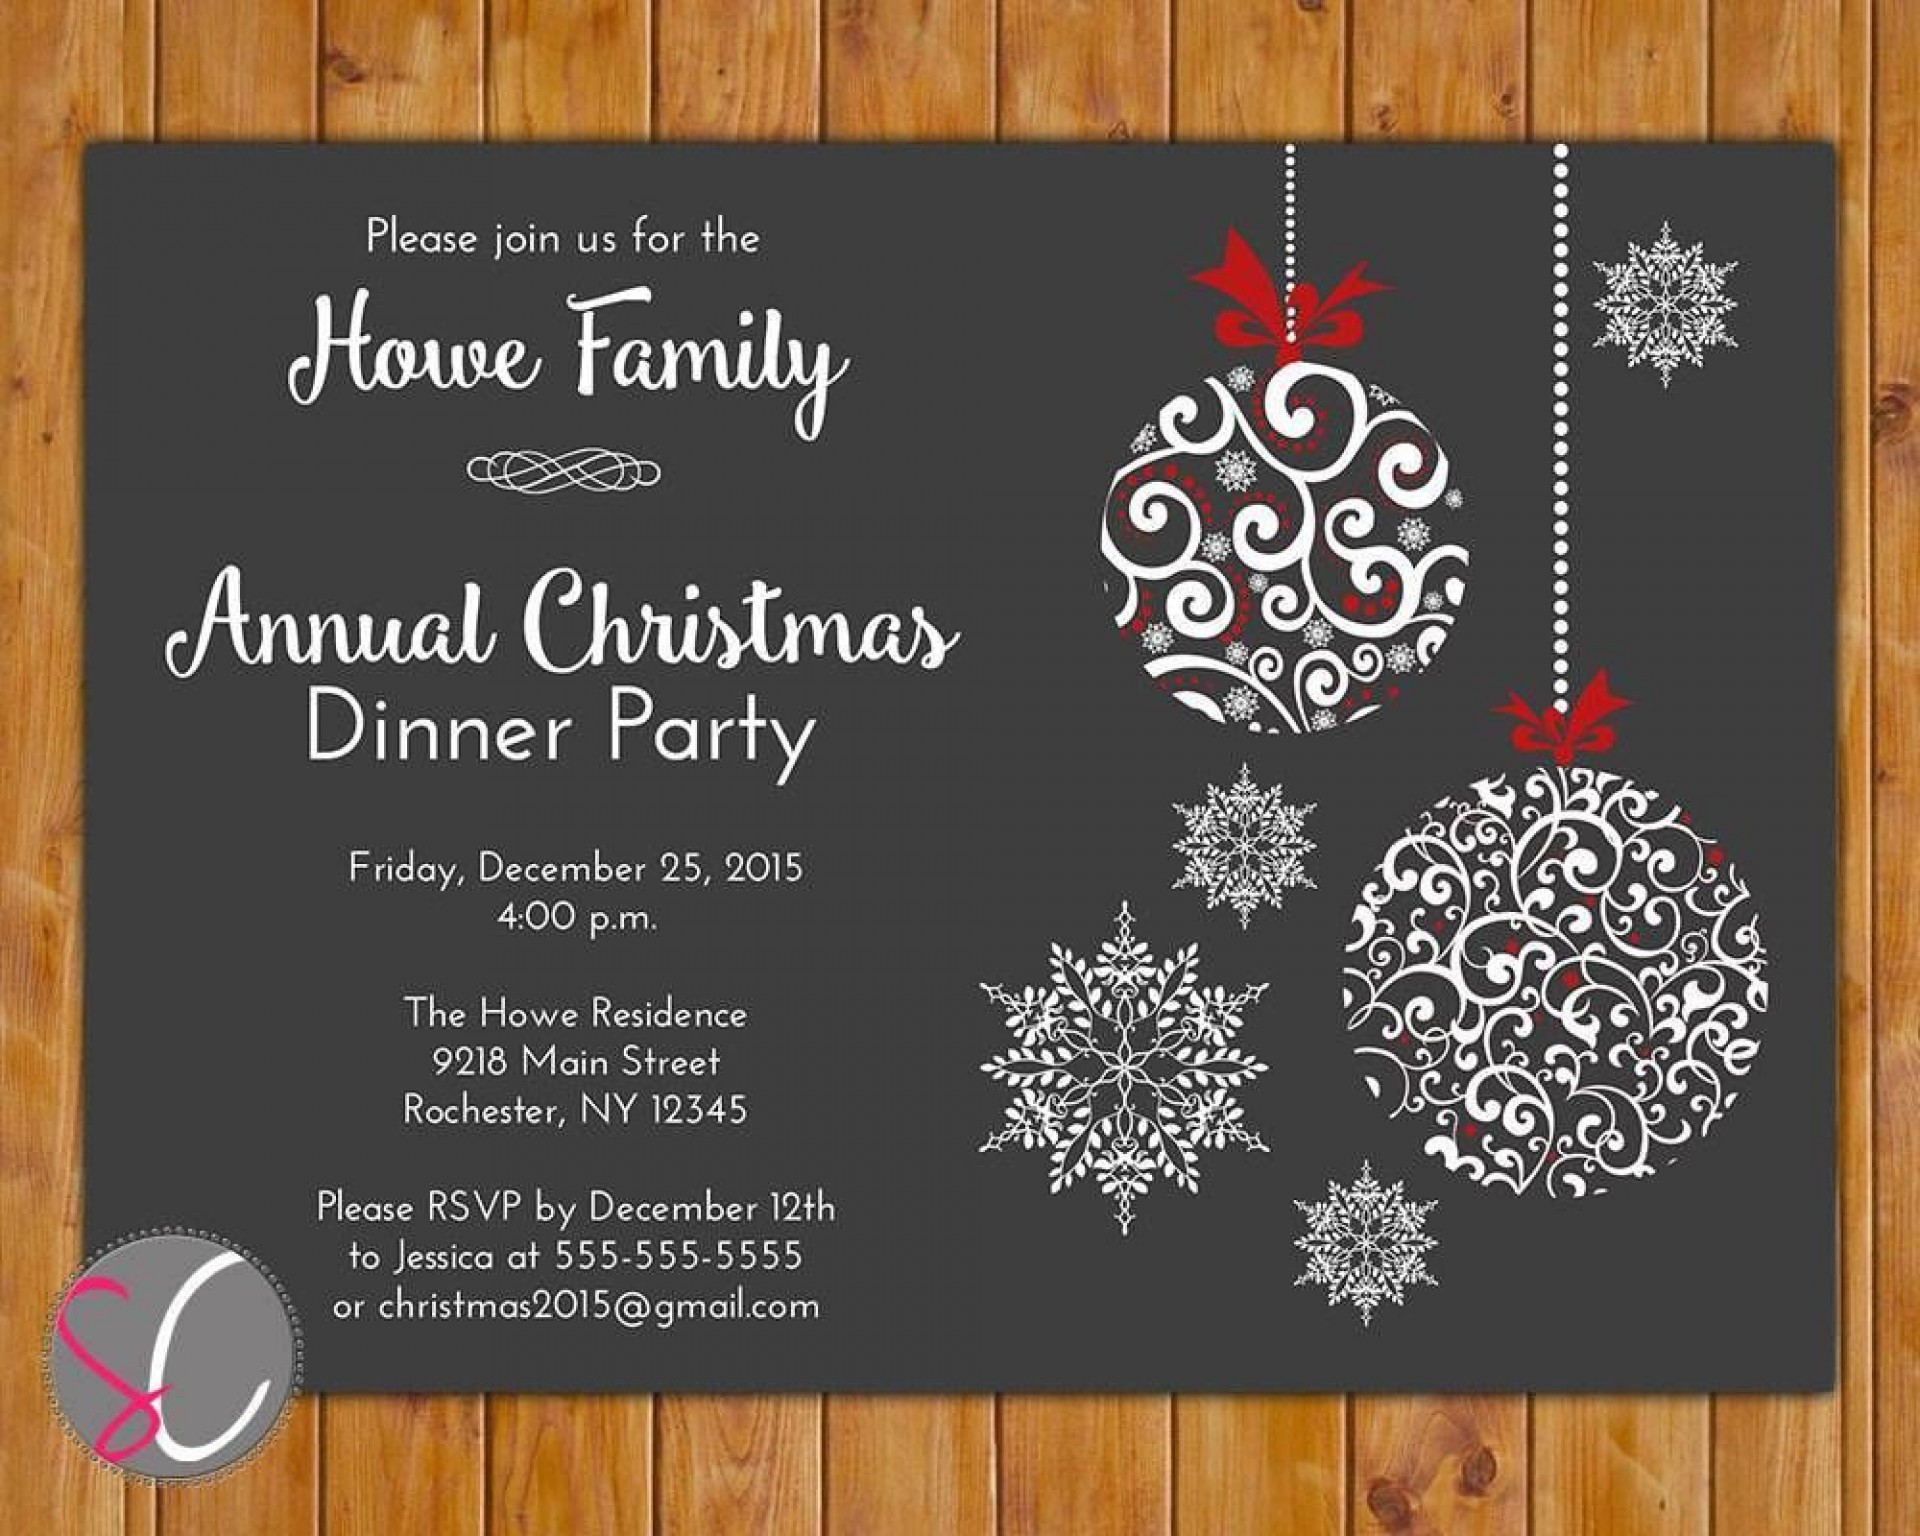 001 Shocking Xma Party Invite Template Free Inspiration  Holiday Invitation Word Download Christma1920